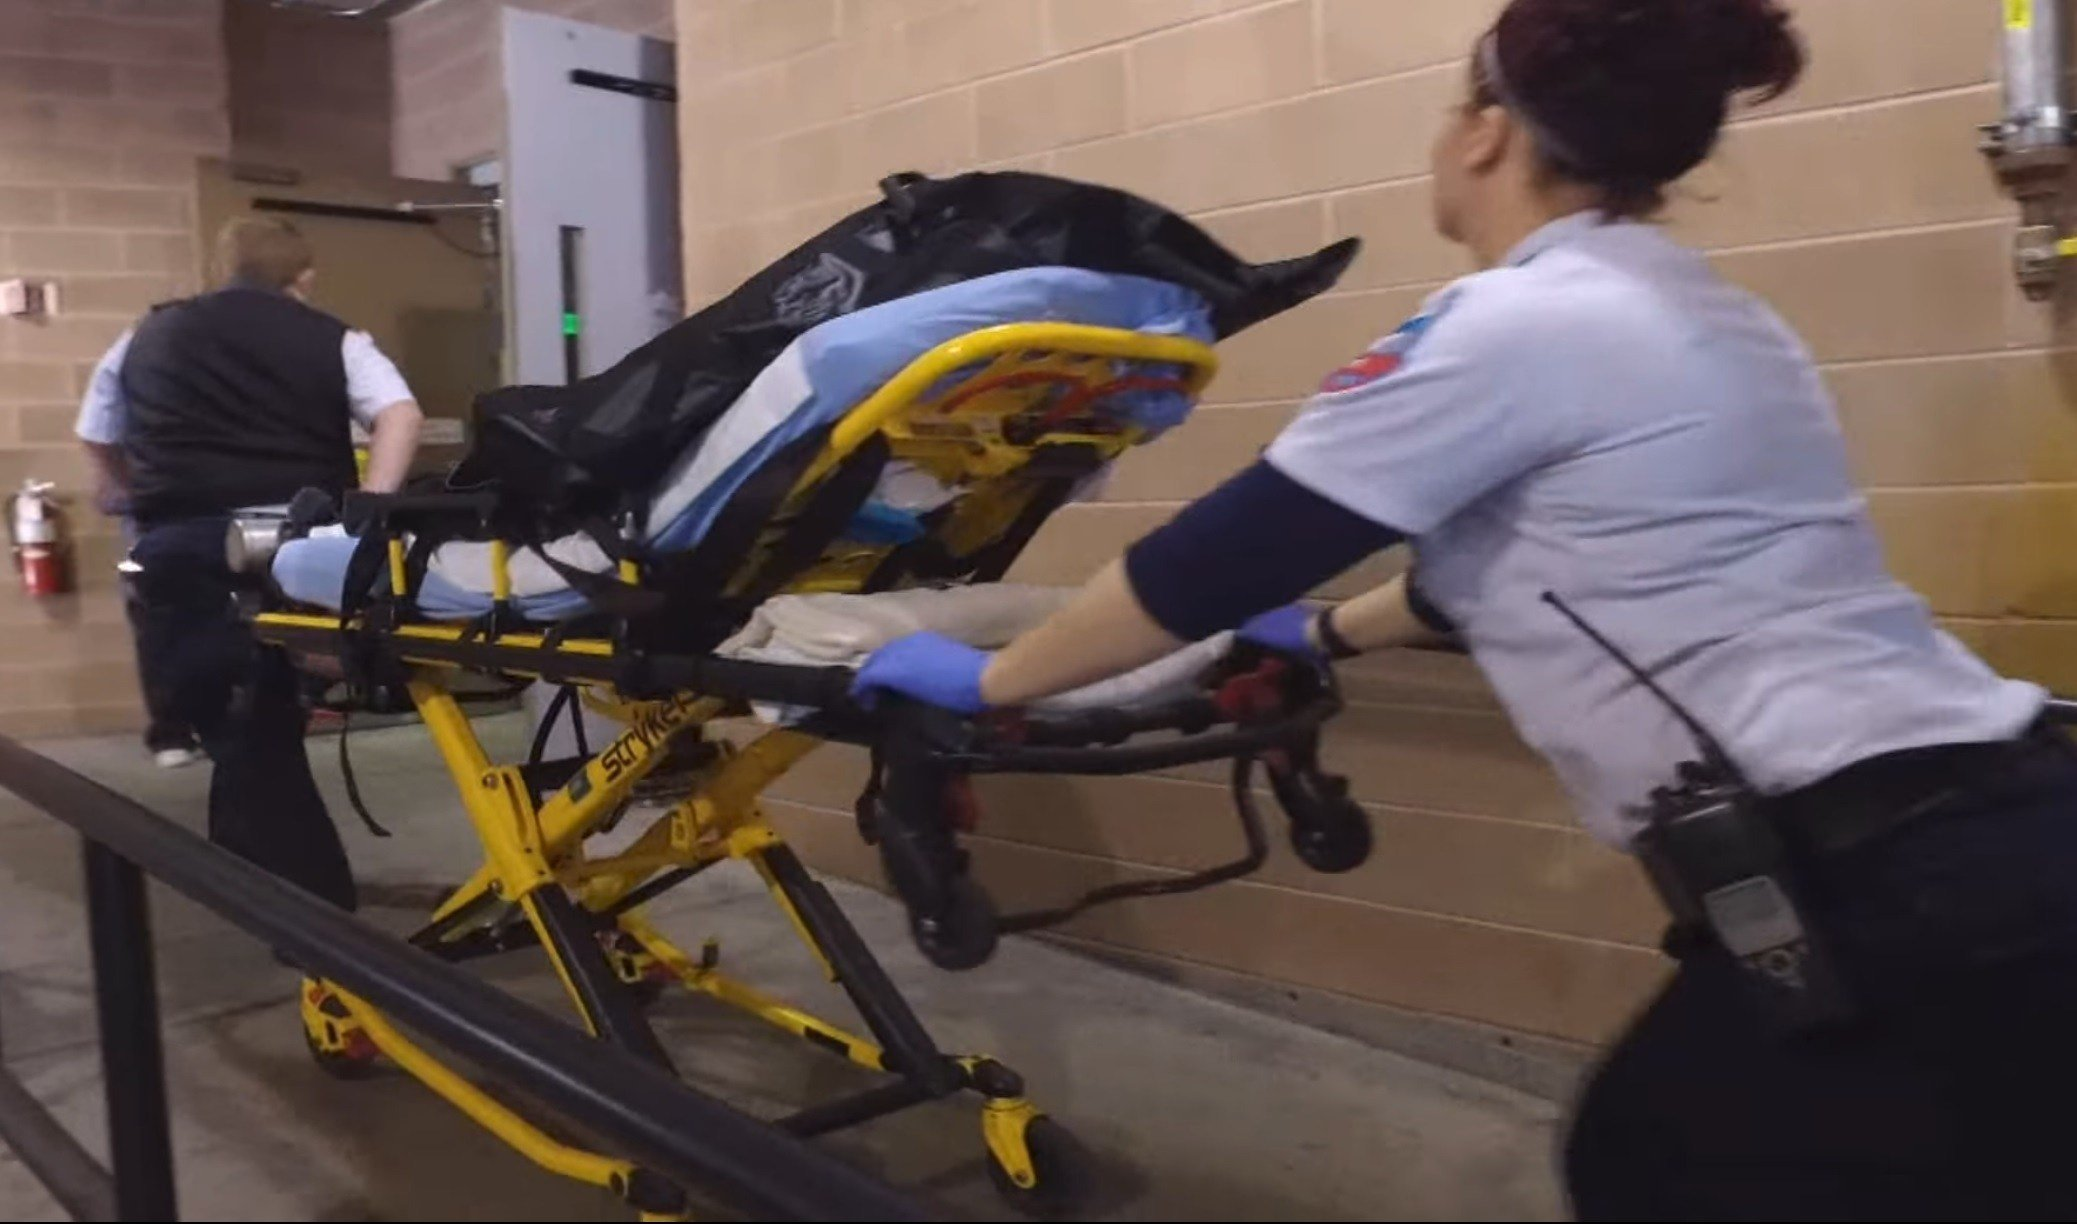 People have been receiving top level trauma care at UCHealth Memorial in Colorado Springs for years